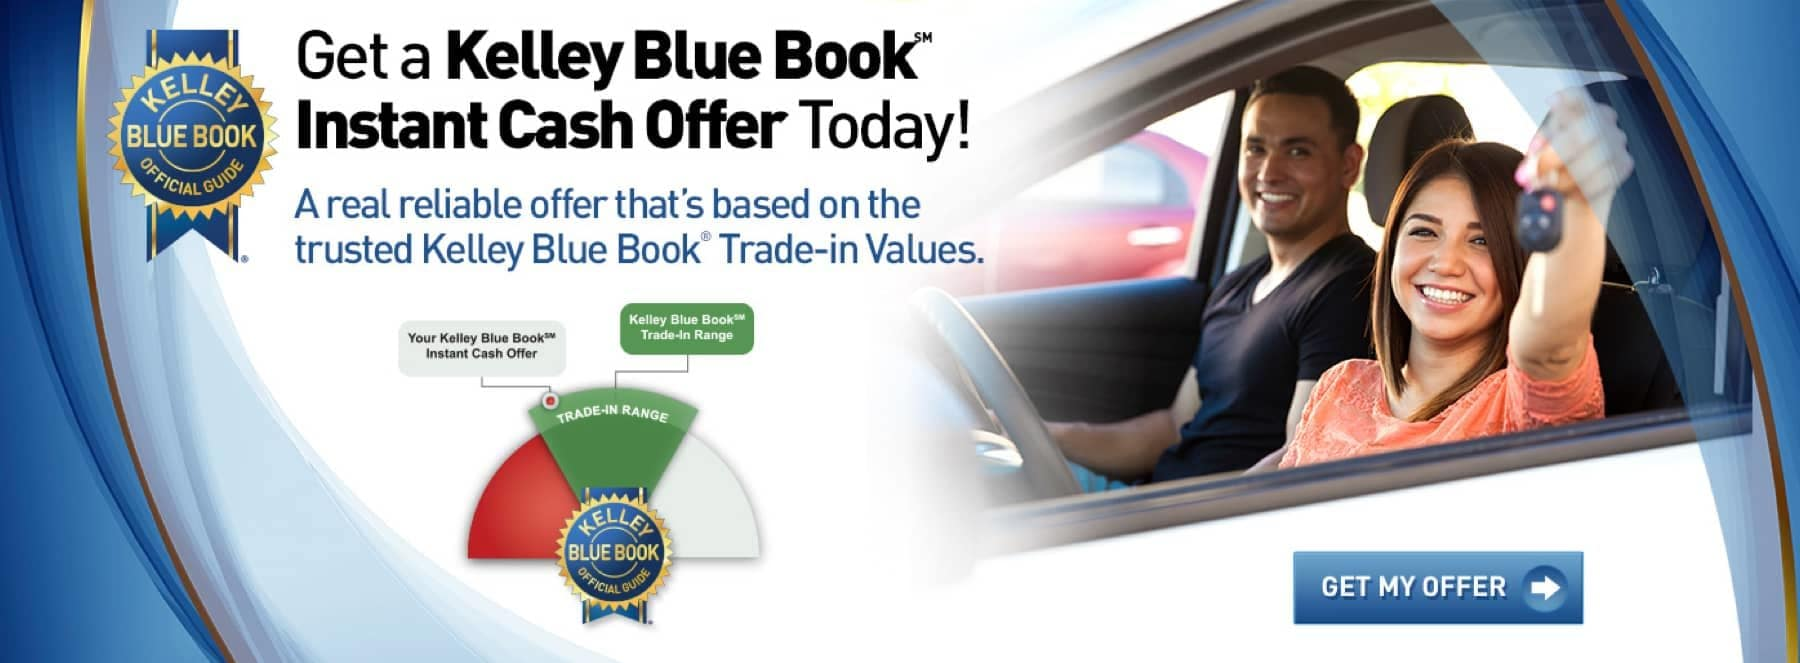 Kelley Blue Book Instat Cash Offer